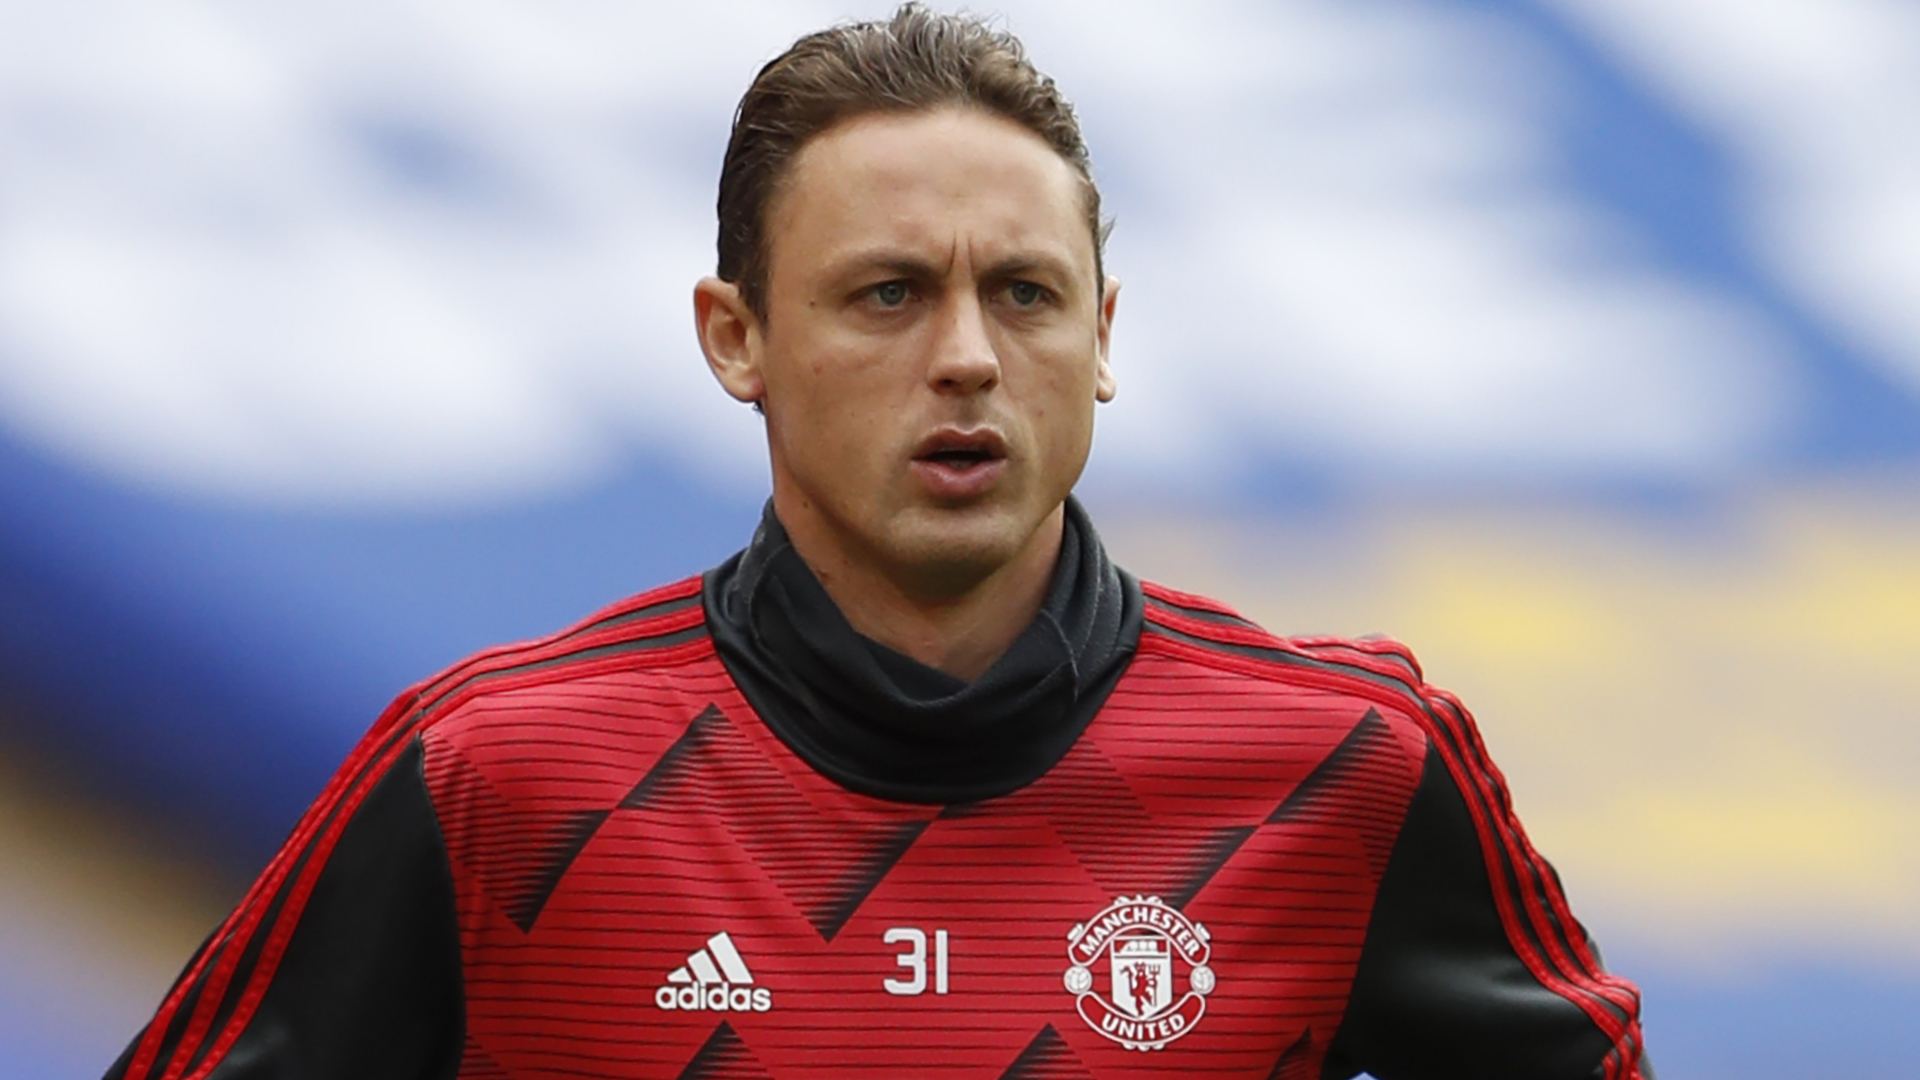 'No team can win every game' - Man Utd's Matic calls for consistency following underwhelming start to 2020-21